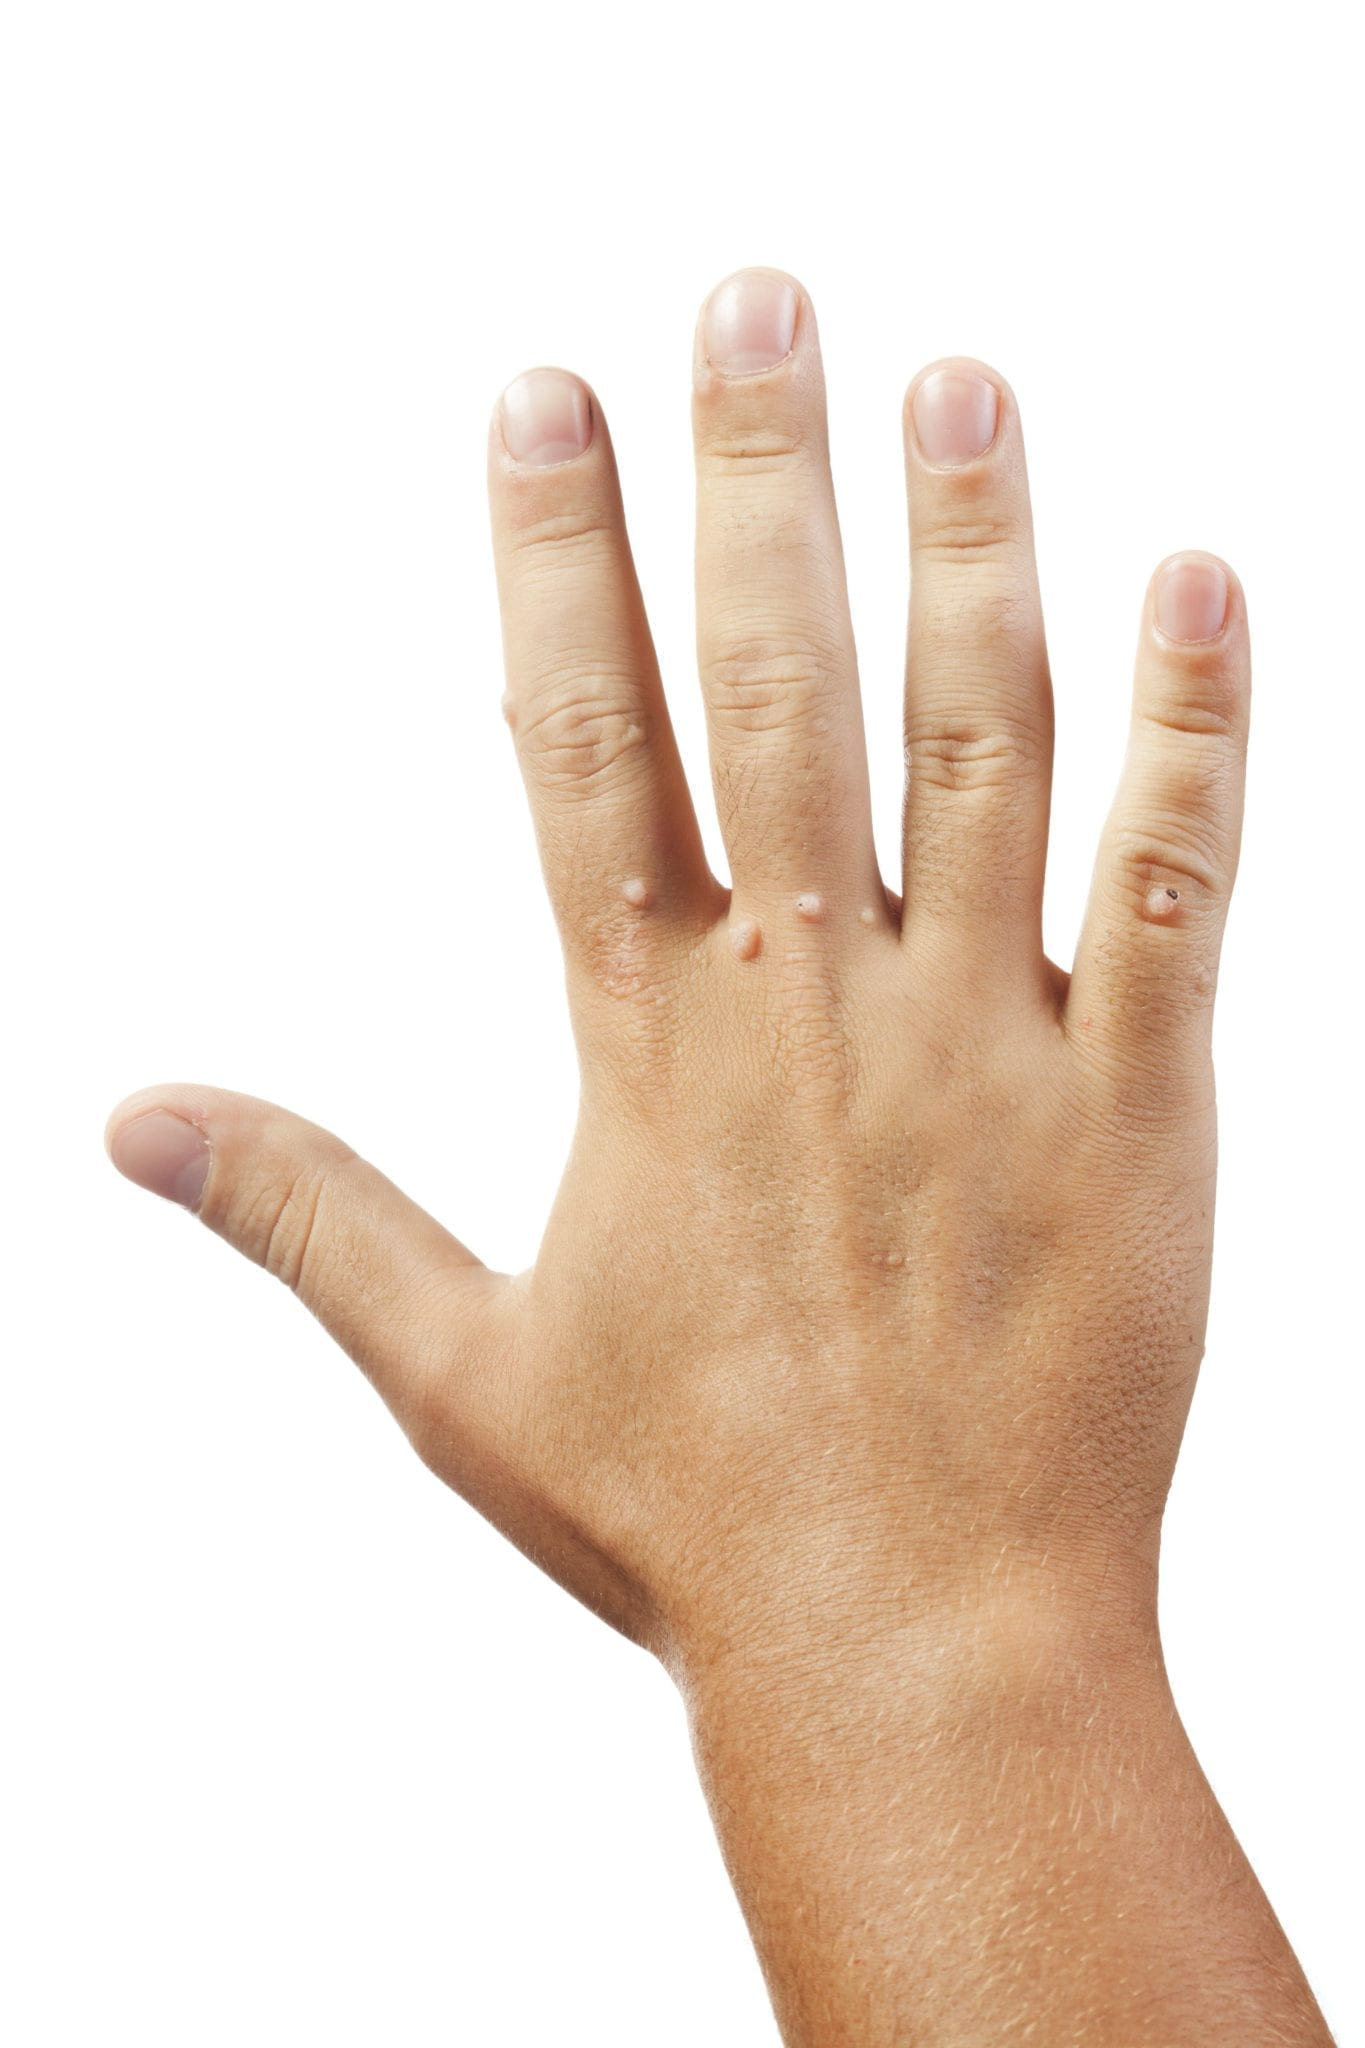 warts on hands sexually transmitted